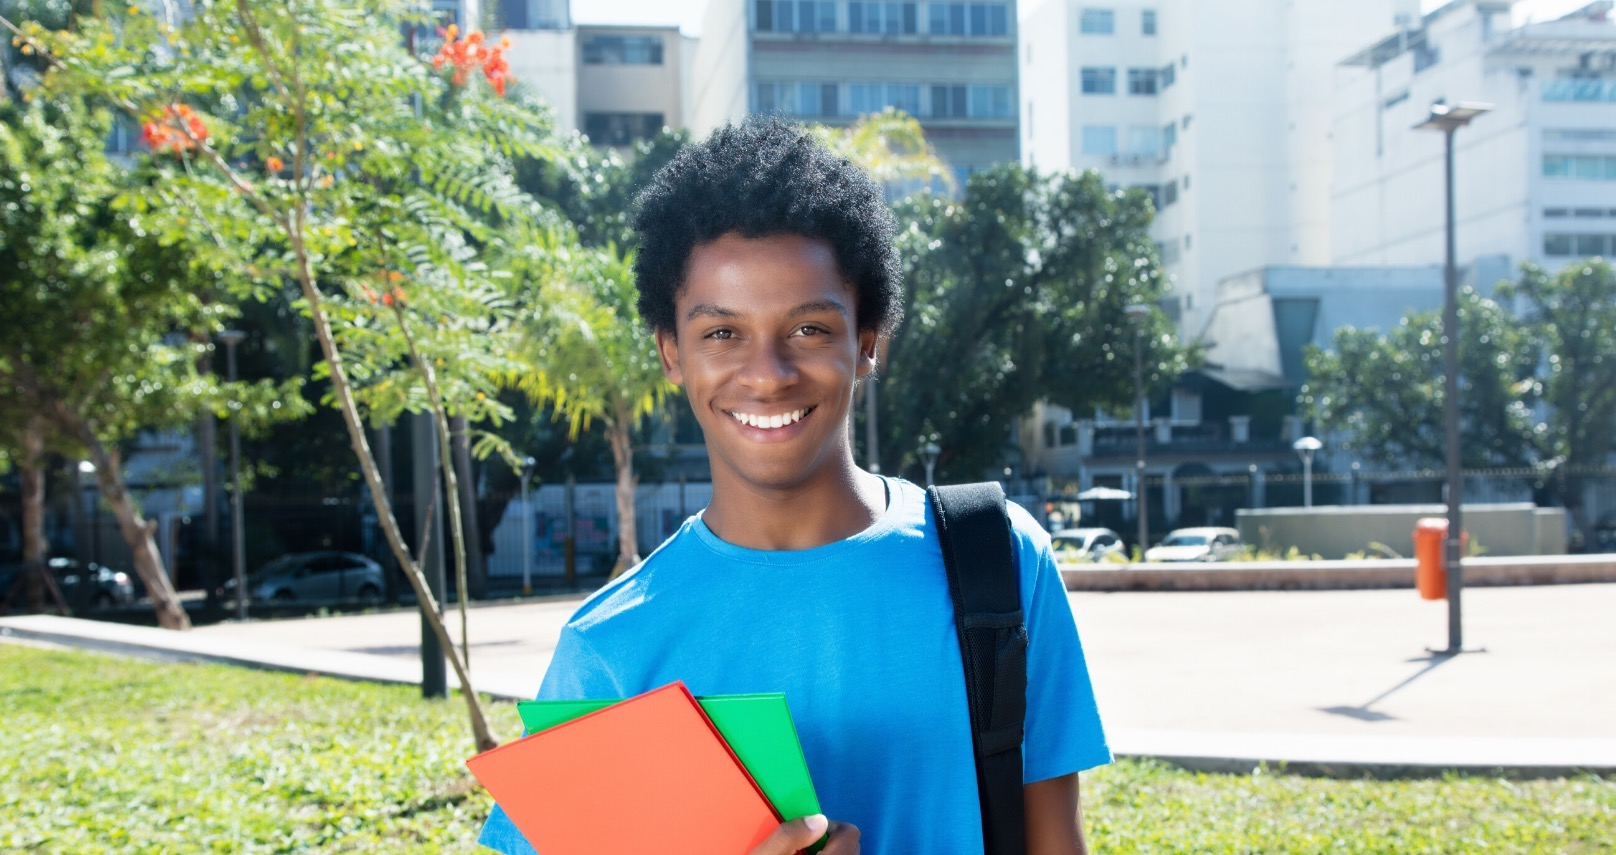 African%20american%20male%20student%202_